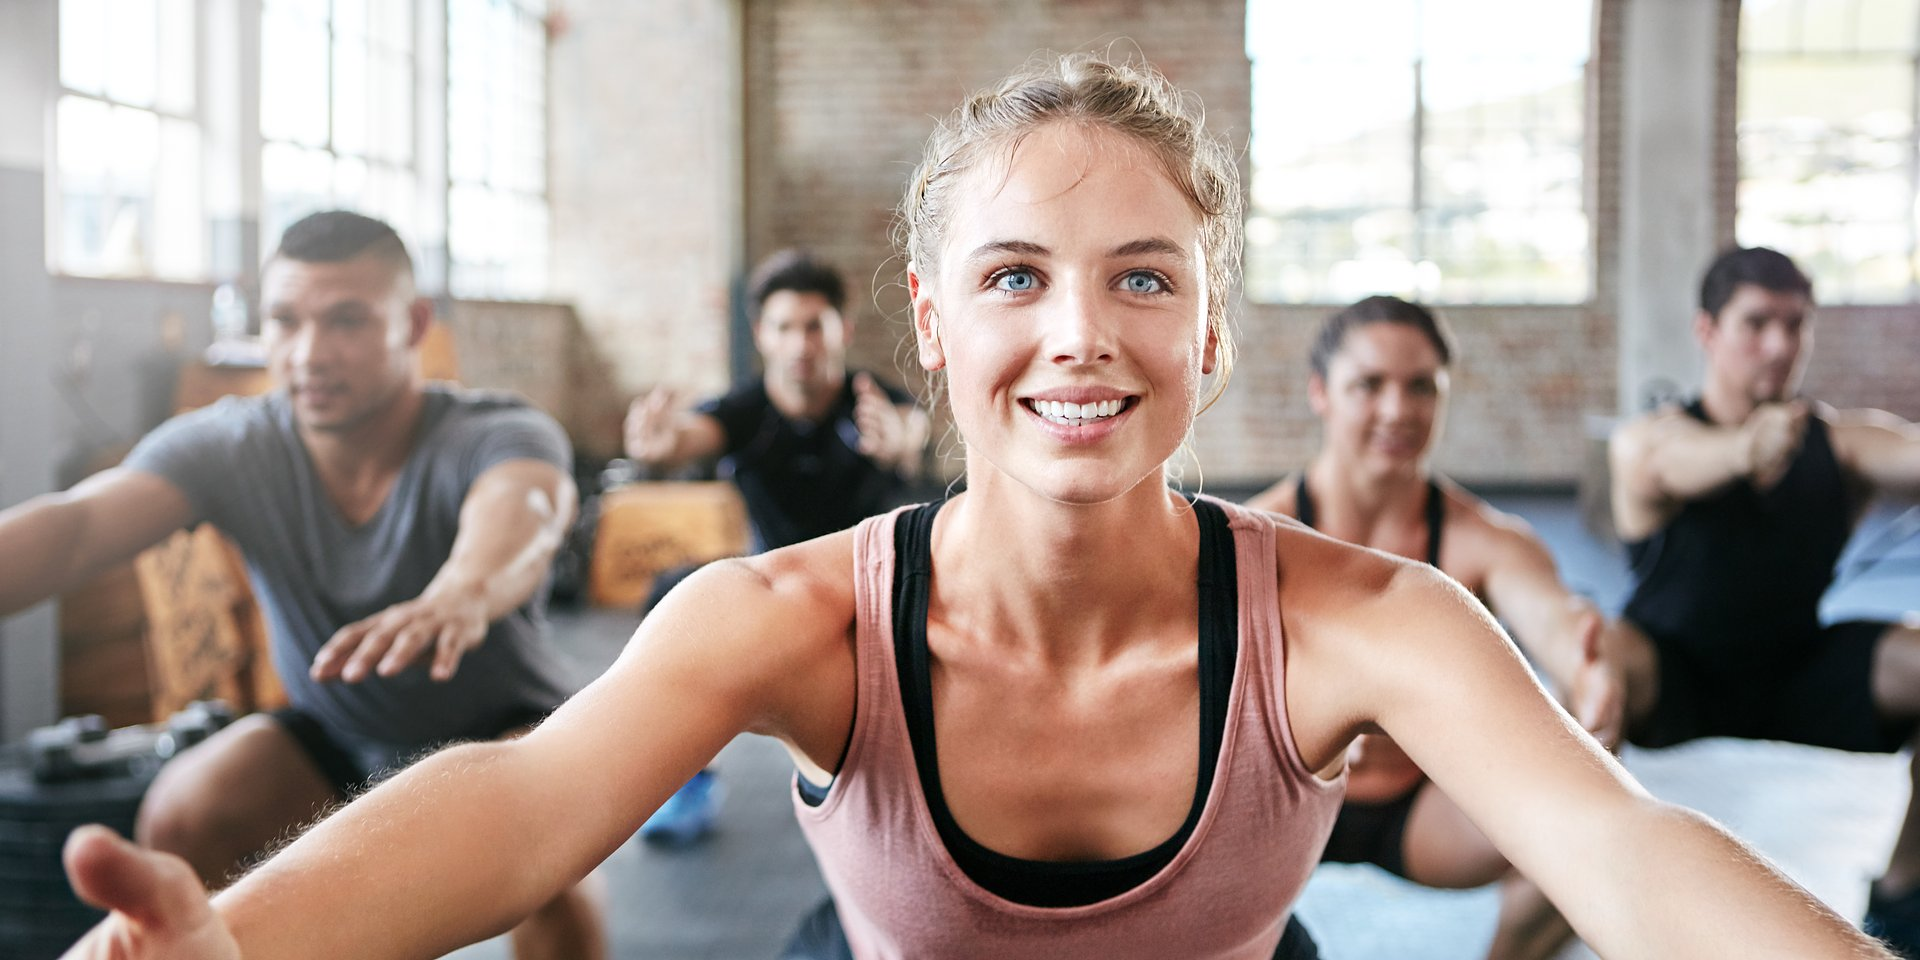 Research in the fitness industry confirms: clubs and gyms are safe